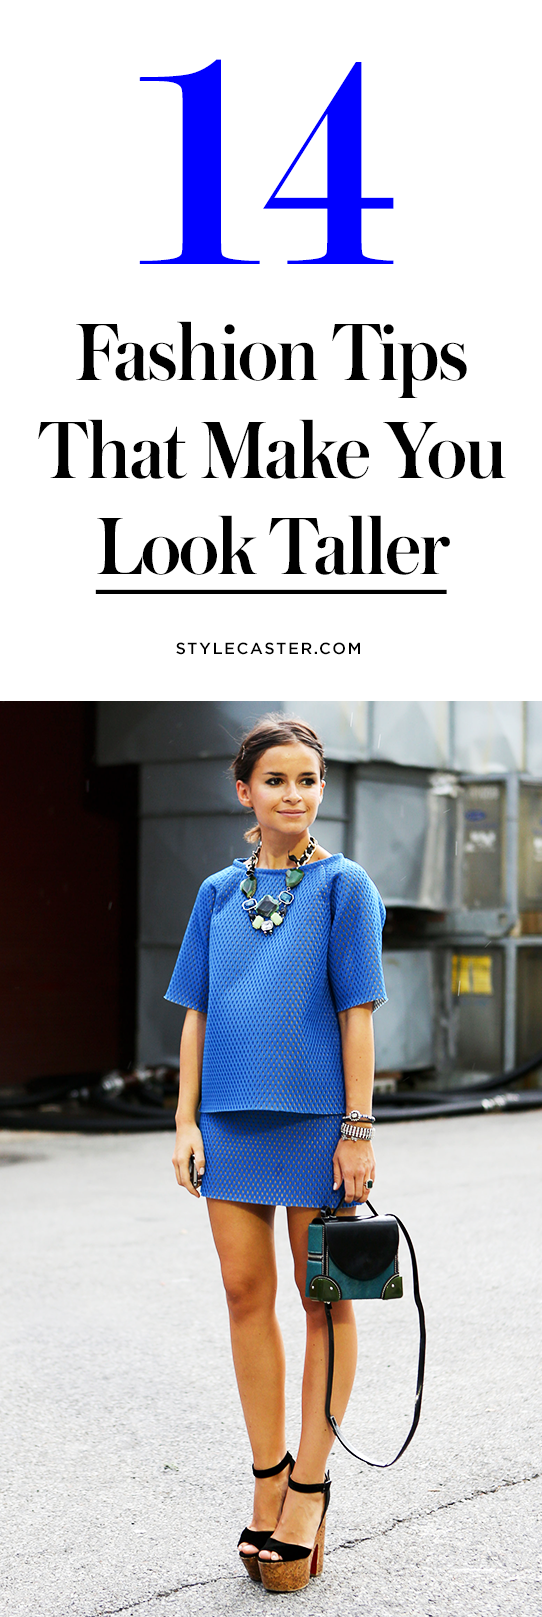 12 Fashion Styling Tricks to Make You Look Taller — Short street style stars like Miroslava Duma and Olivia Lopez have got this down. Learn how to expertly outfit your petite frame @stylecaster